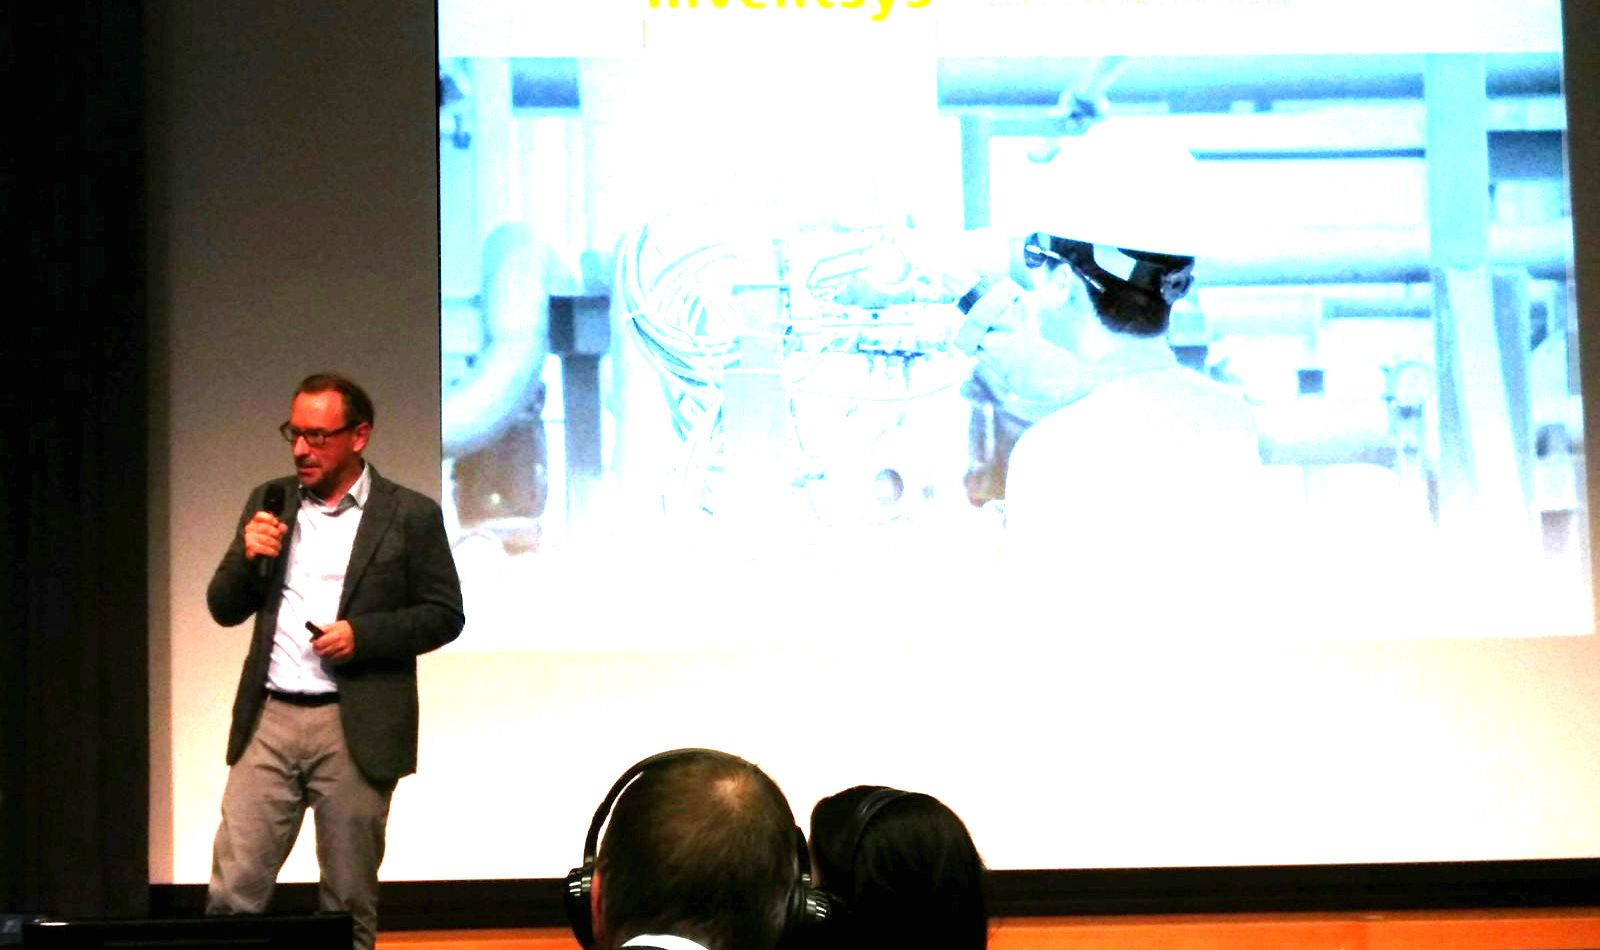 Inventsys at the Energy Startup Day Thursday, November 30, 2017